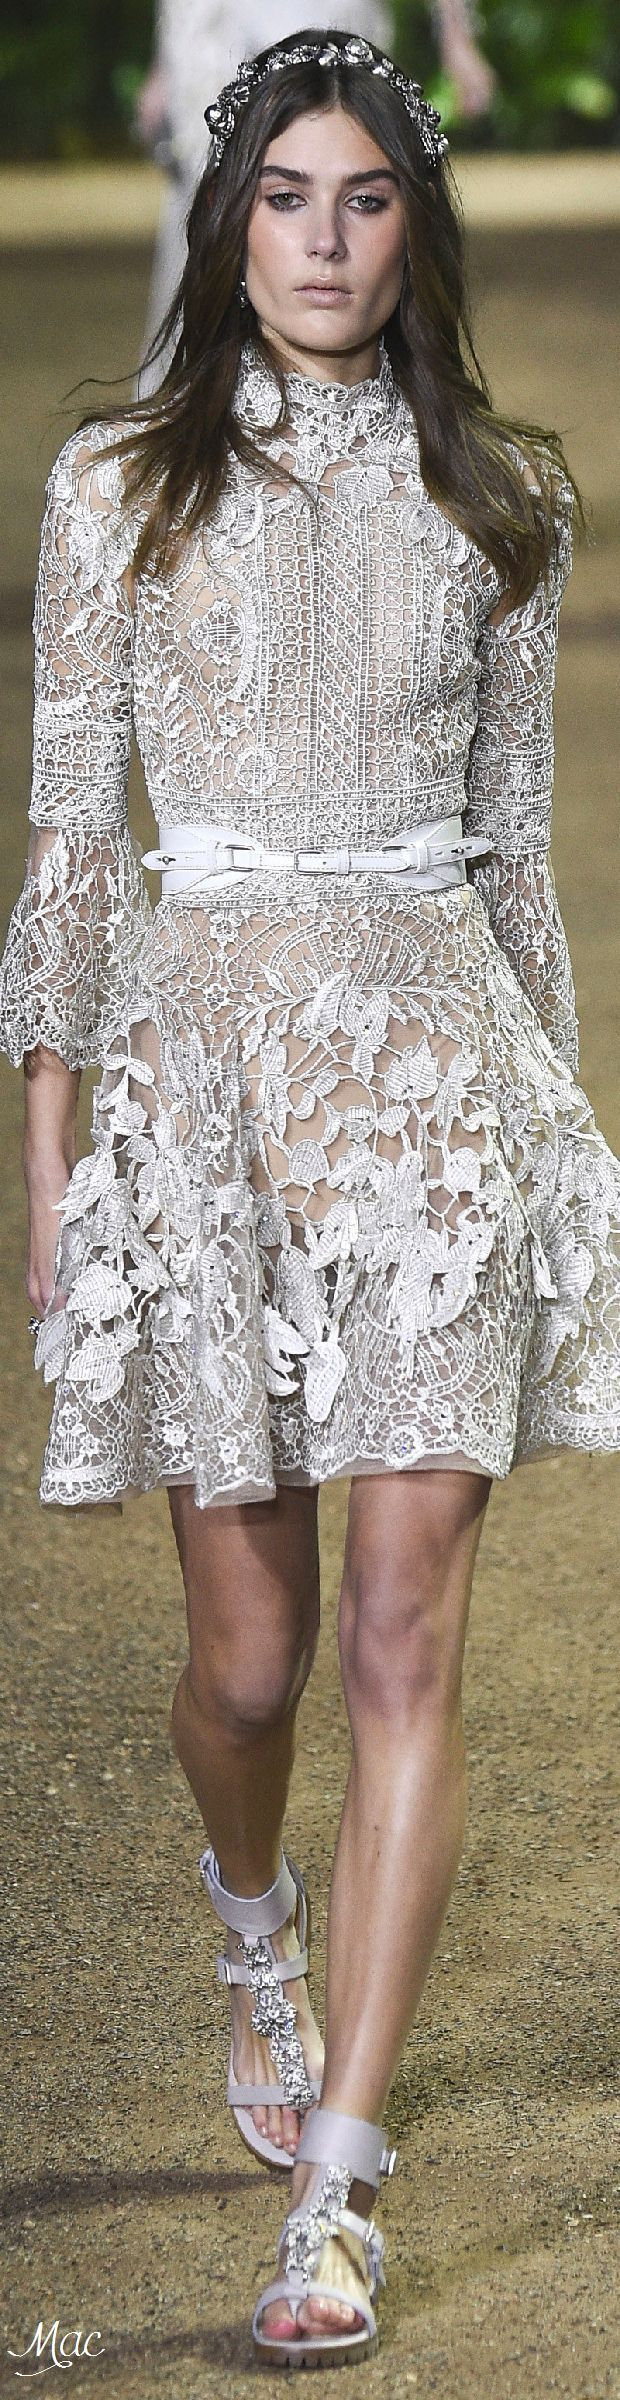 best images about all things detail on pinterest gowns elie